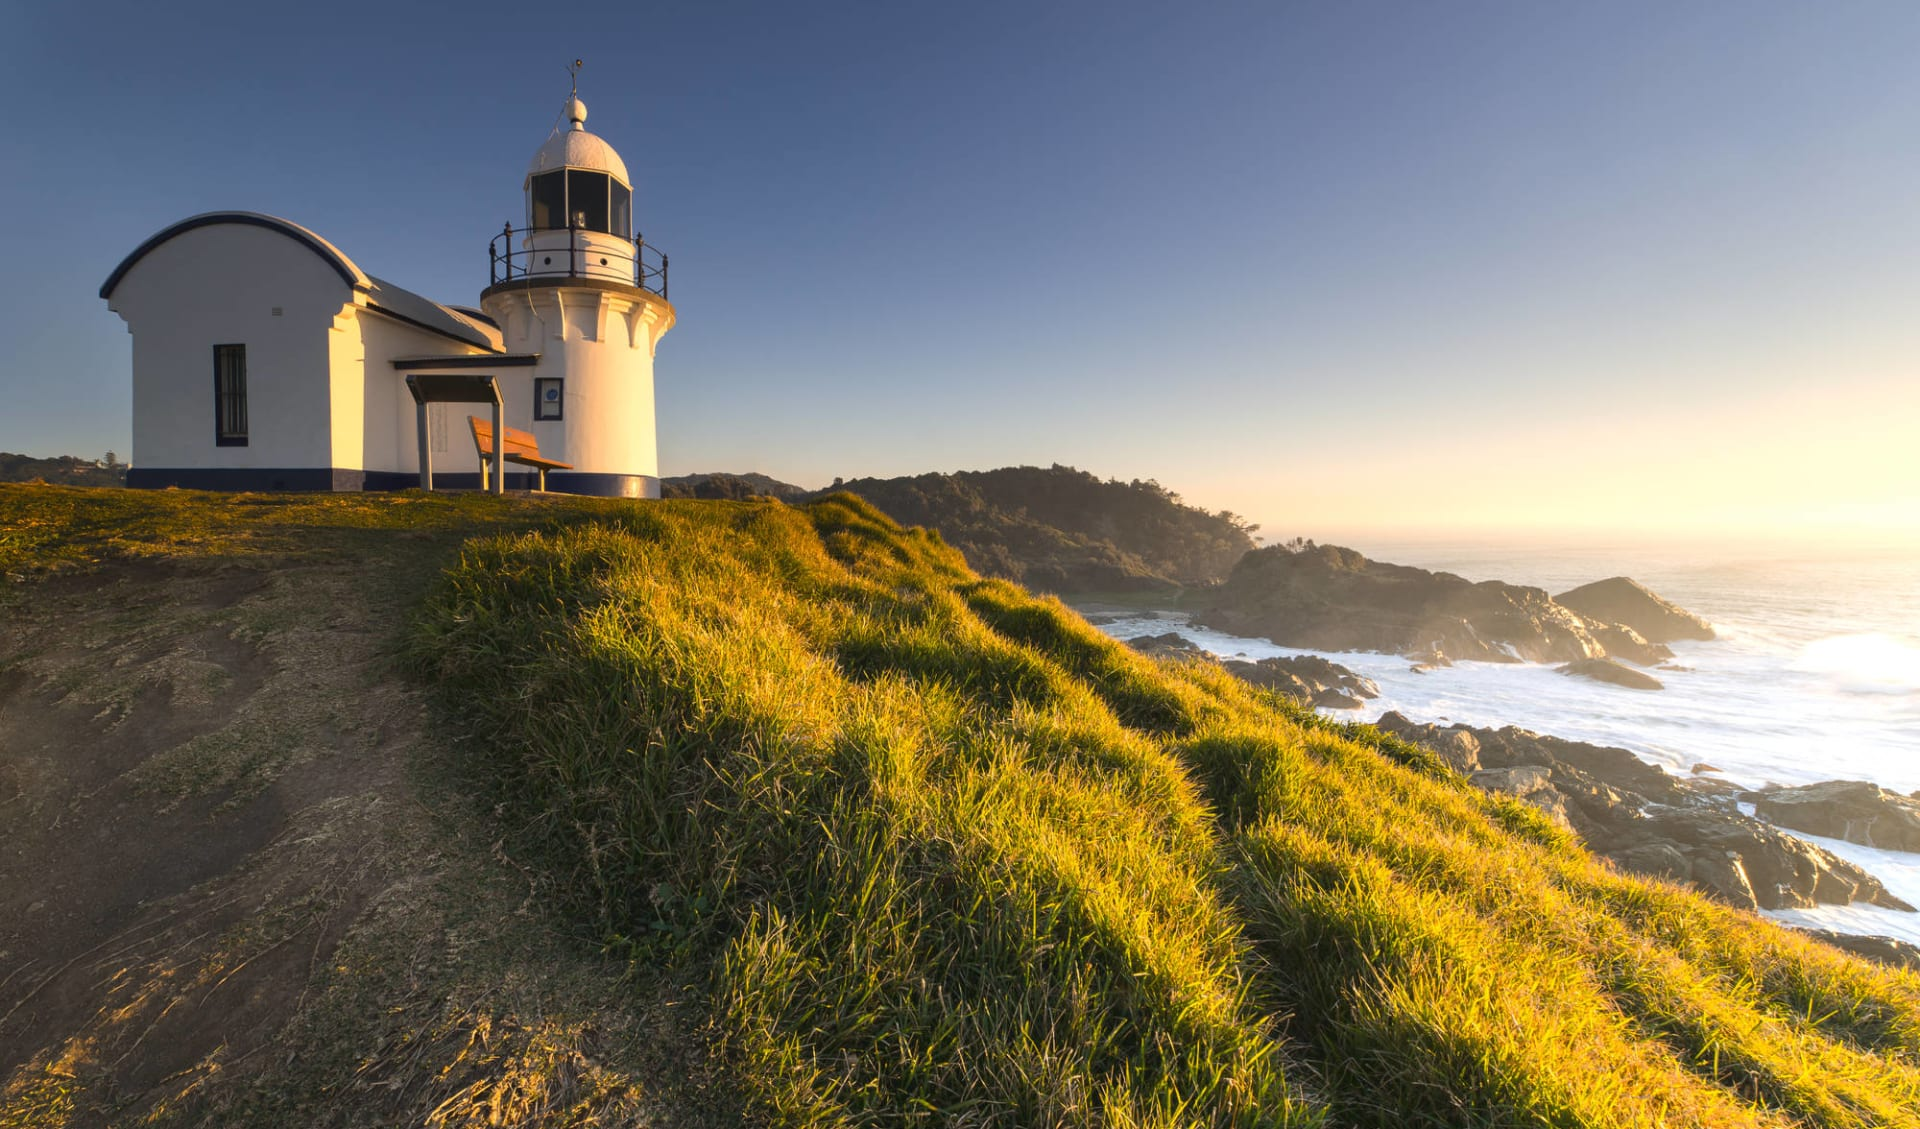 East Coast Encompassed ab Sydney: Tacking Point Light House in Port Macquarie